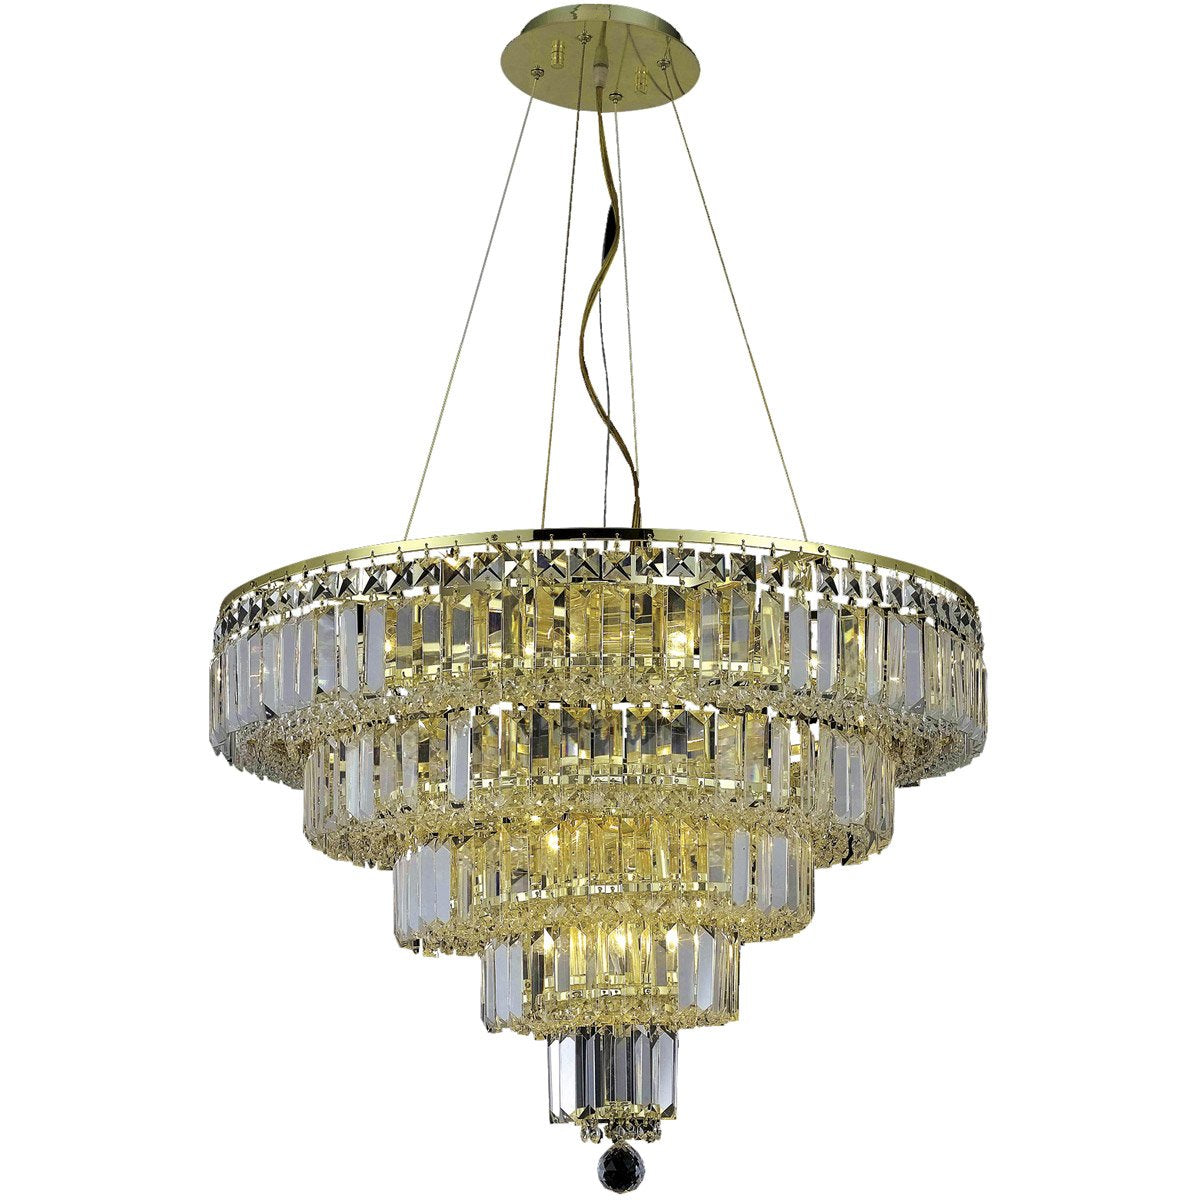 Maxime 26 Crystal Chandelier With 14 Lights - Gold Finish And Clear / Royal Cut Crystal Chandelier